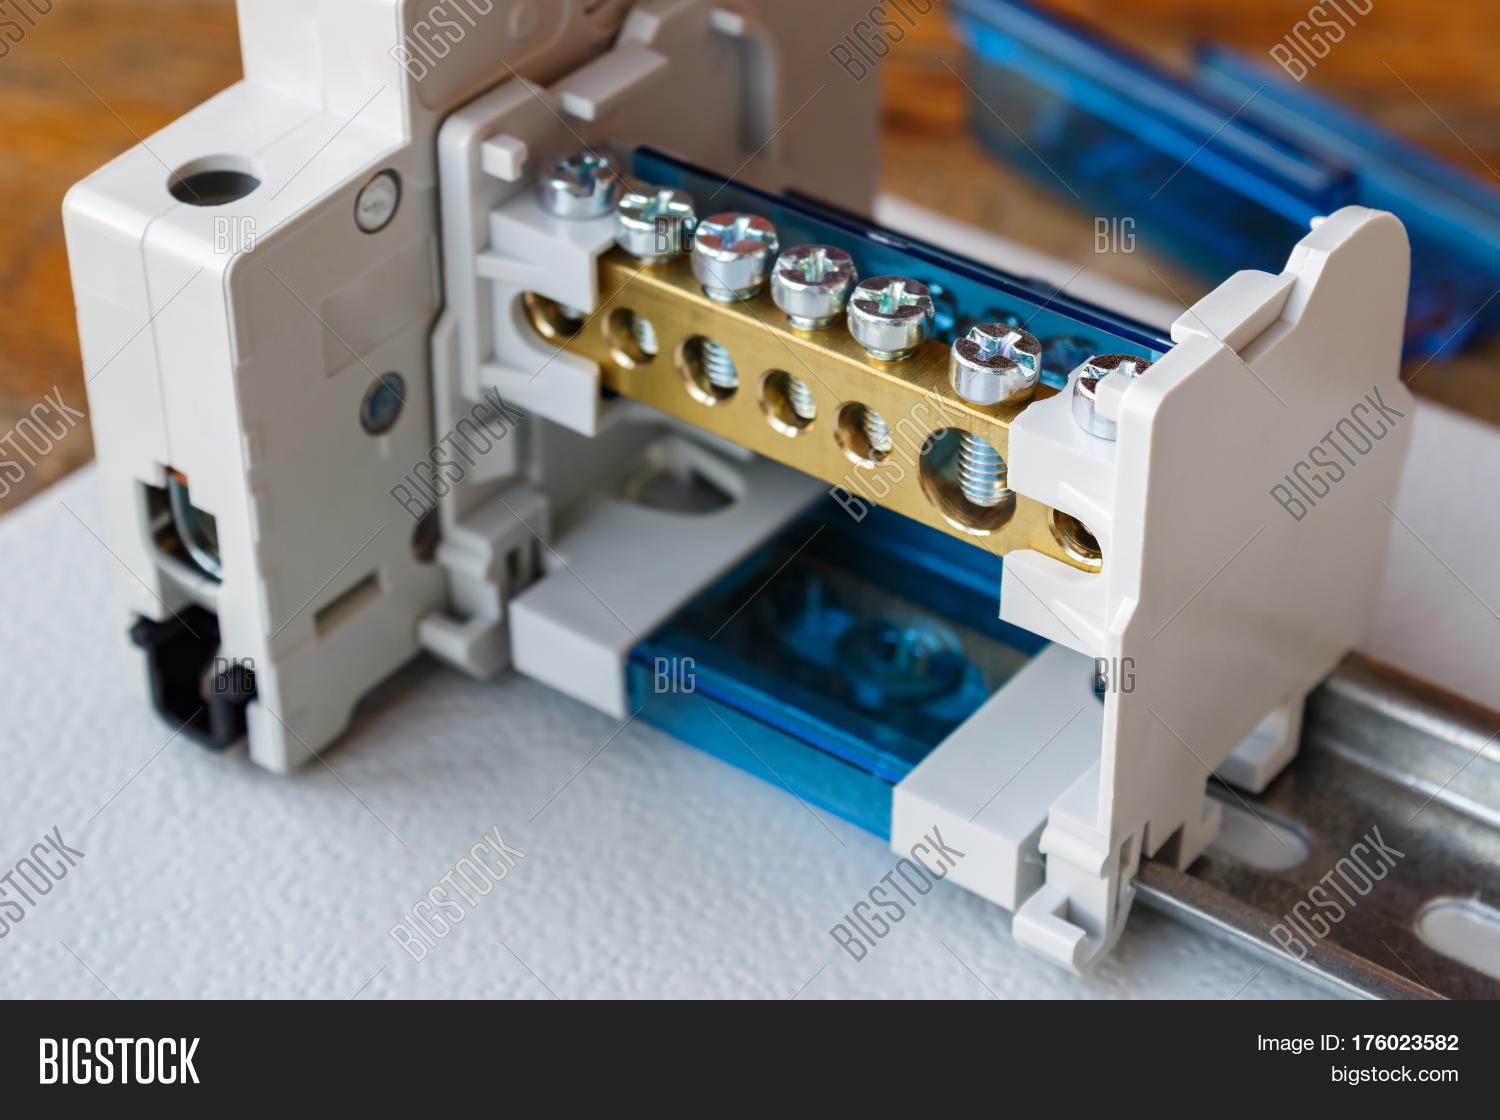 Wire Terminal Block Image Photo Free Trial Bigstock Phone Wiring And Circuit Breaker On The Din Rail